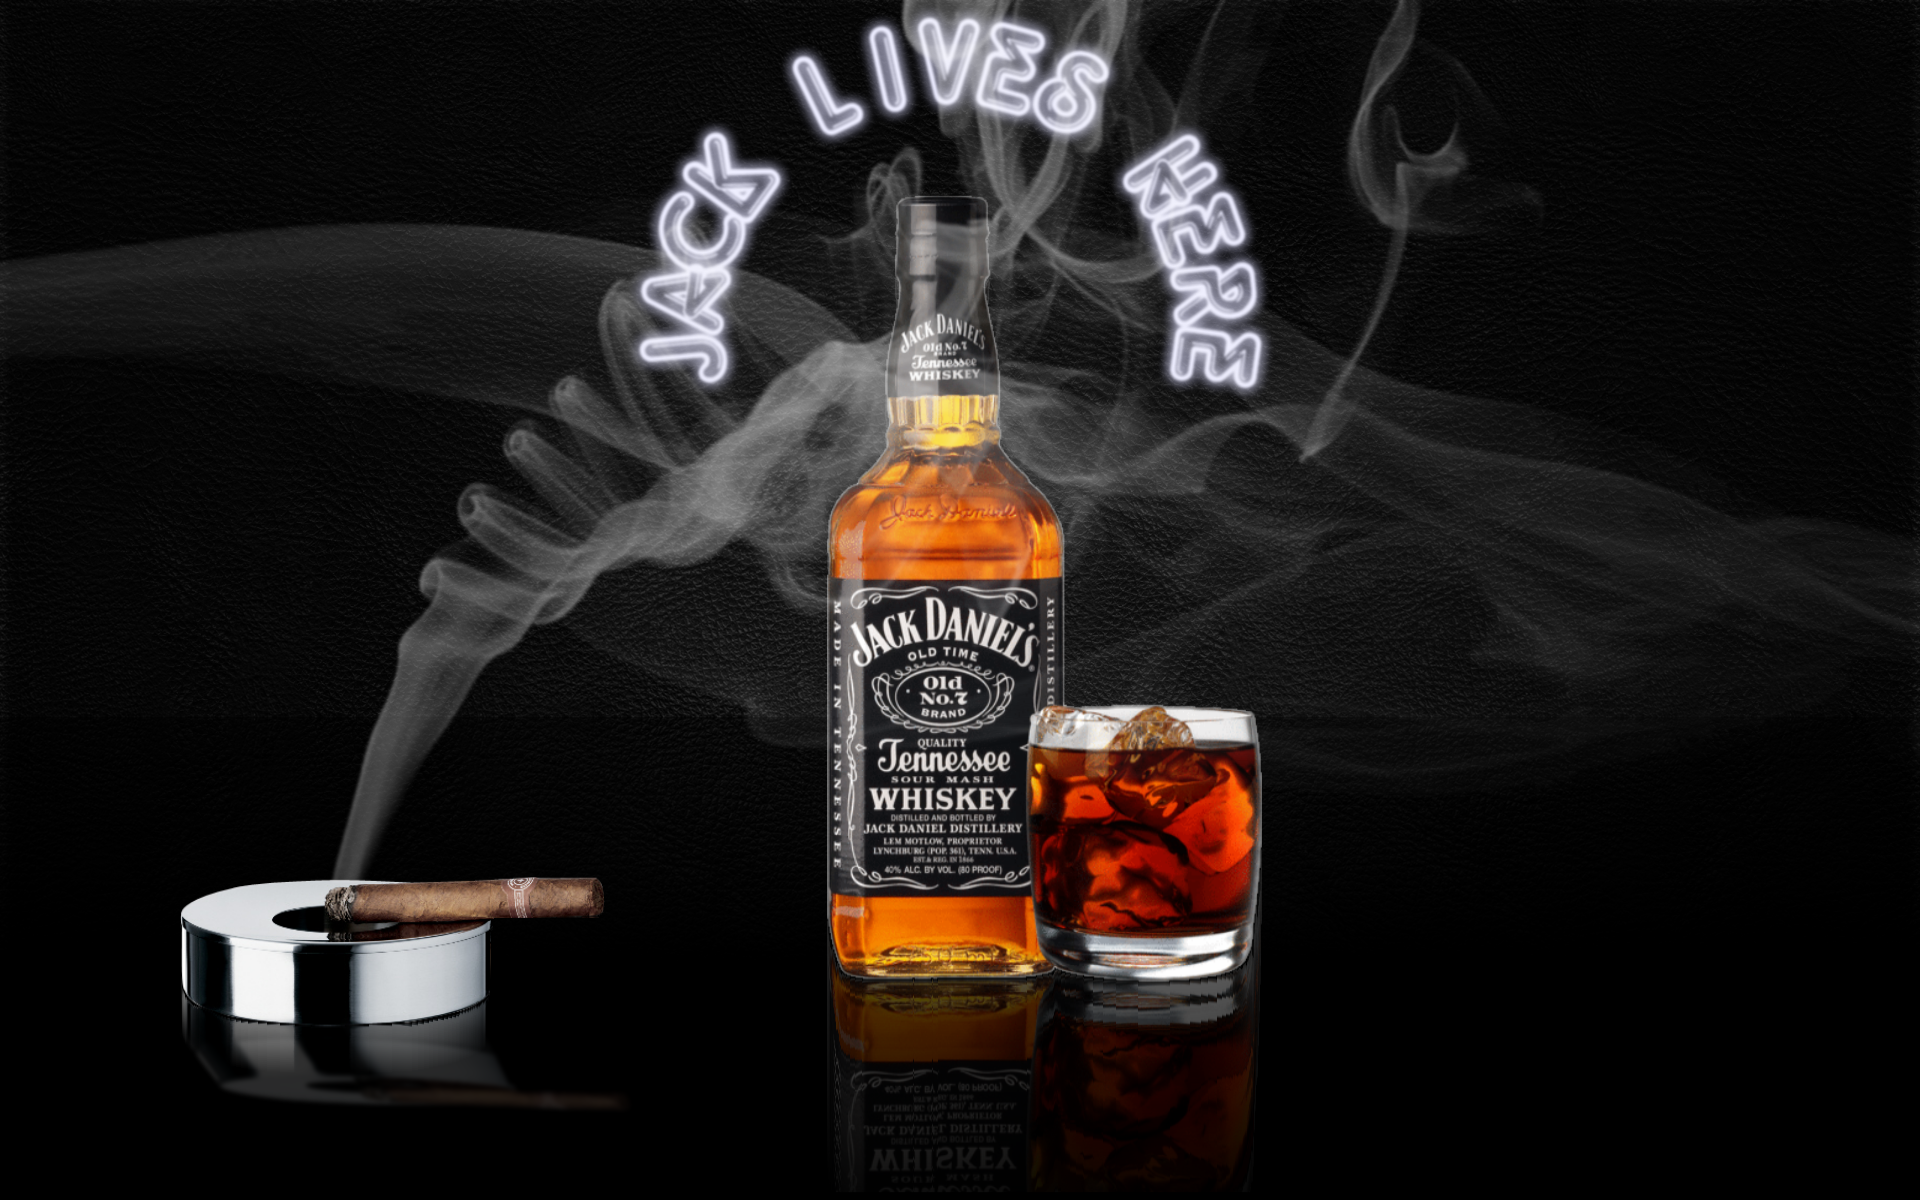 Jack daniels and cigarette hd wallpaper image for pc desktop download free hd for Photos jack daniels